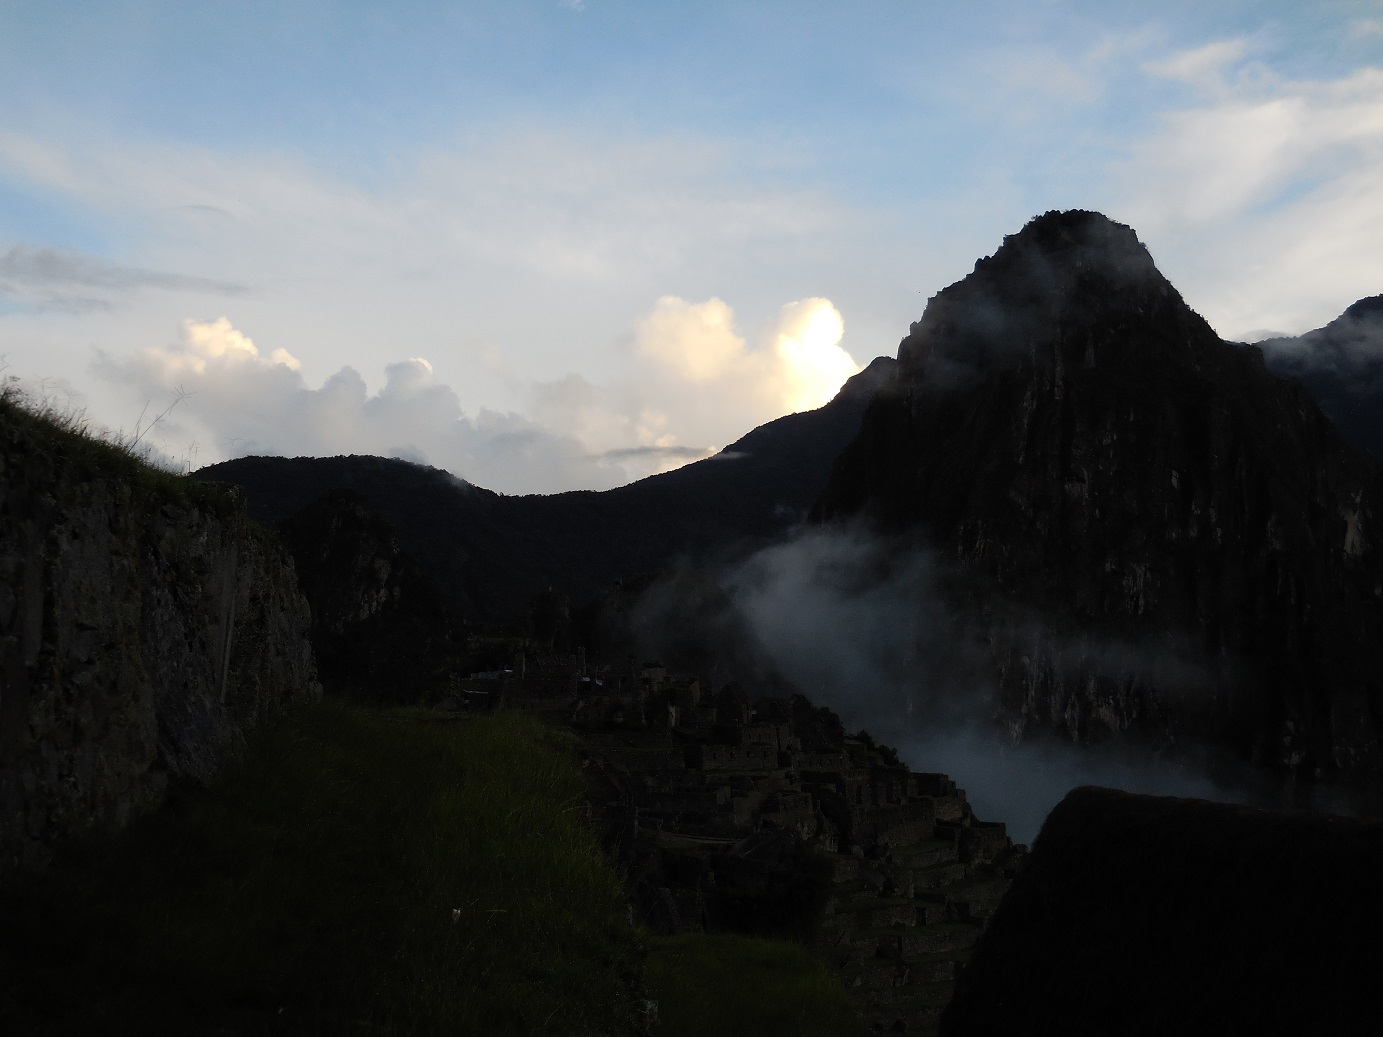 Fog rolling in on Machu Picchu